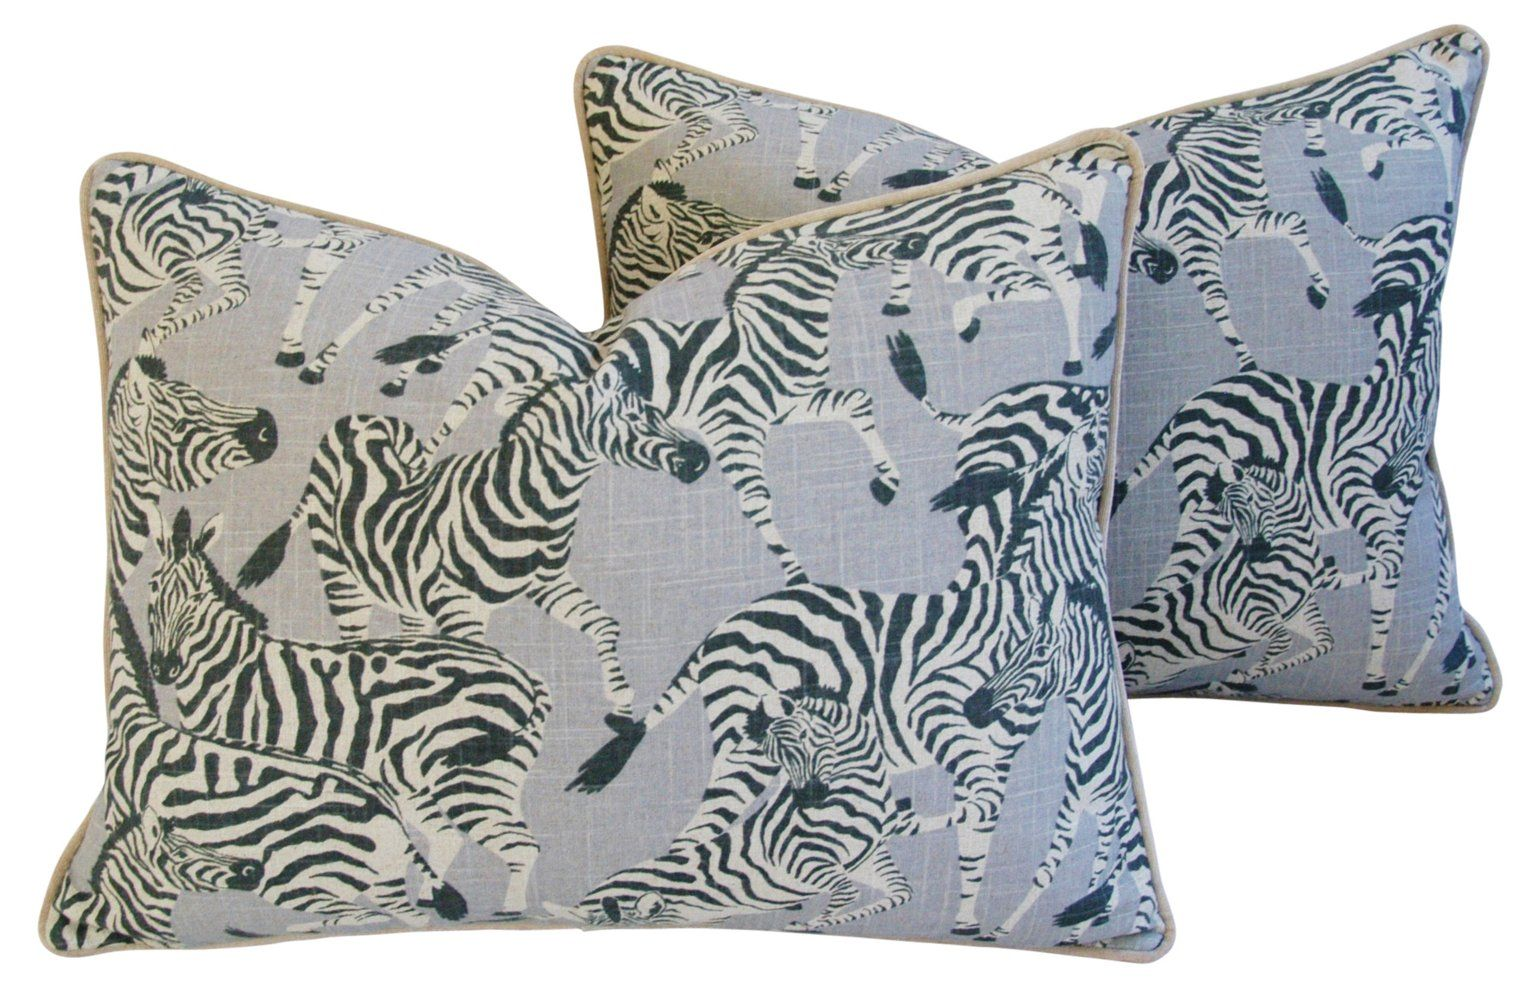 Safari Zebra Linen/Velvet Pillows, Pair - Mike Seratt - Top Vintage Dealers - Vintage  One Kings Lane #Velvet#Pillows#Pair